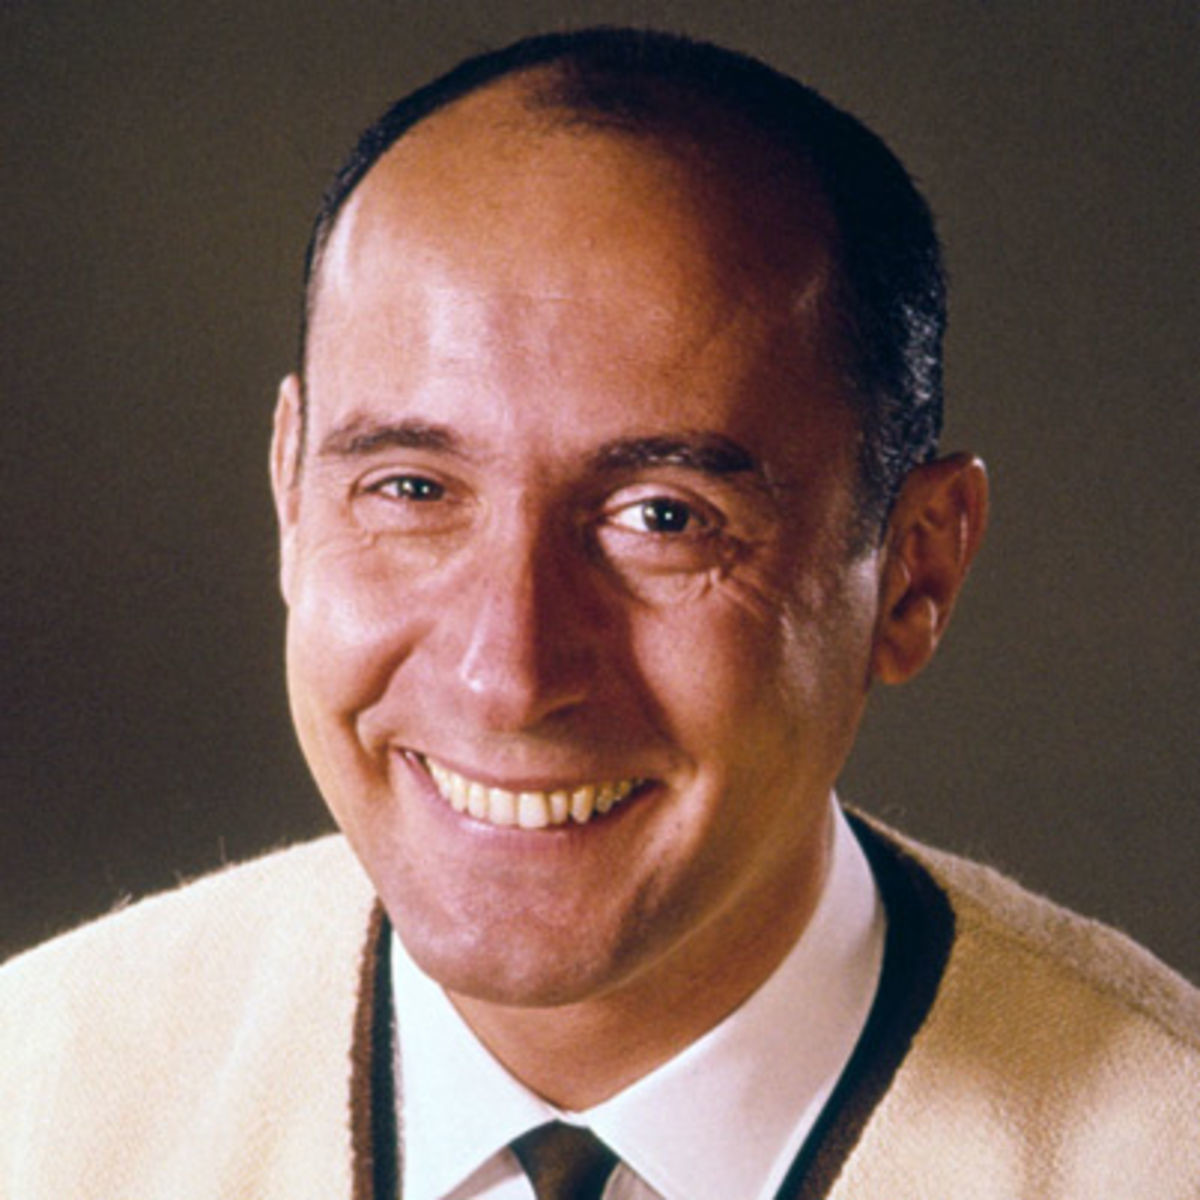 Releases by Henry Mancini | SecondHandSongs